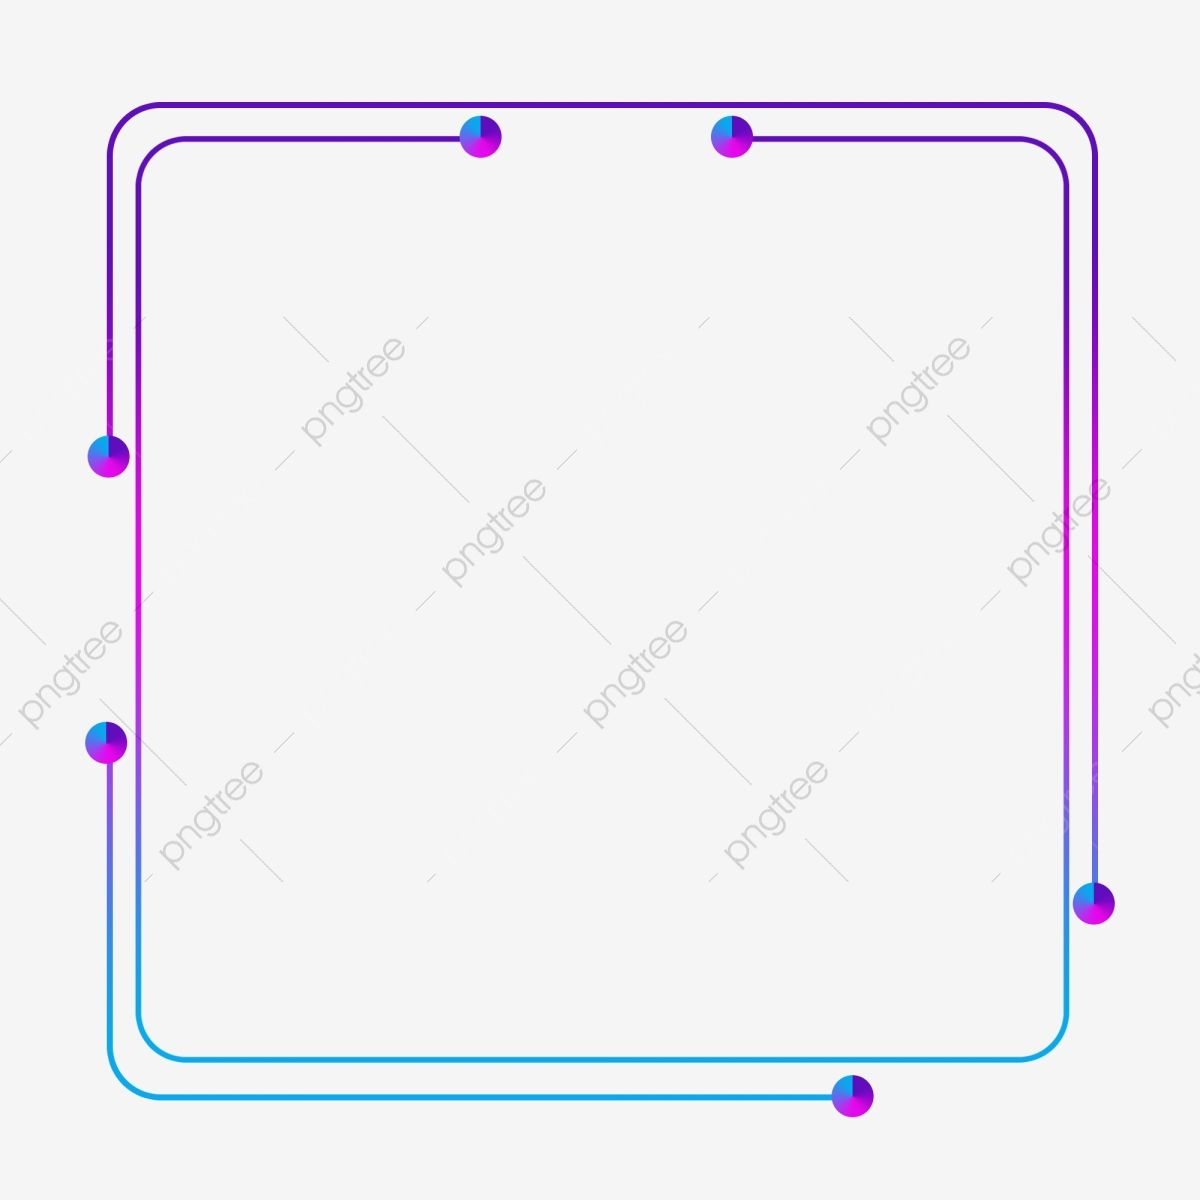 Frame Colored Rounded Rectangle Border Design Gradient Border Texture Rectangle Clipart Border Psd Source File Decoration Png Transparent Clipart Image And P In 2021 Border Design Graphic Design Background Templates Rounded Rectangle